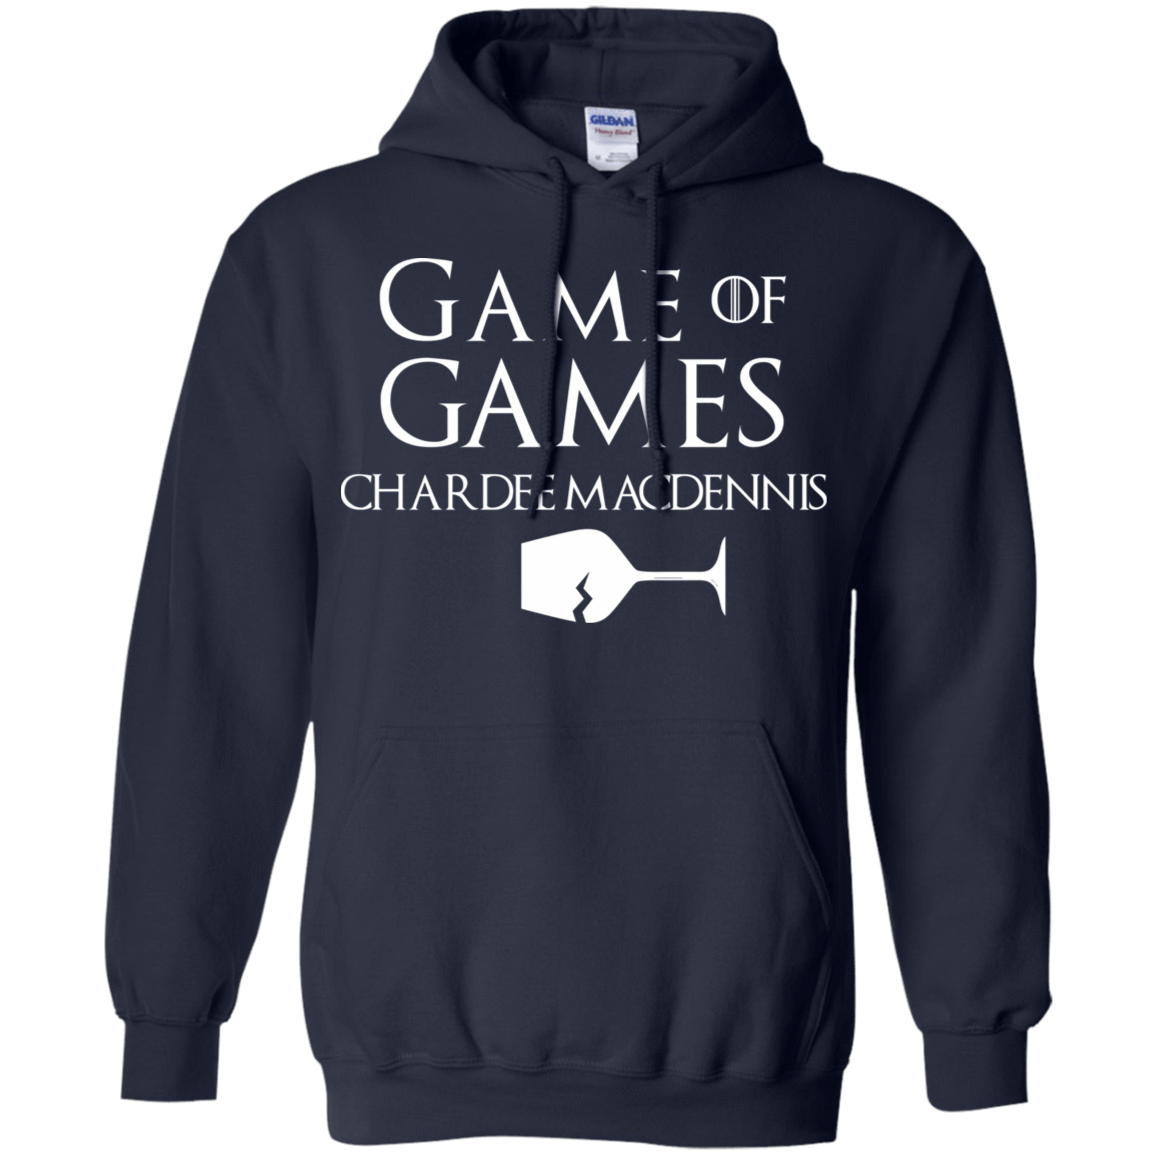 Game Of Games Chardee Macdennis 541-4742-72957244-23135 - Tee Ript